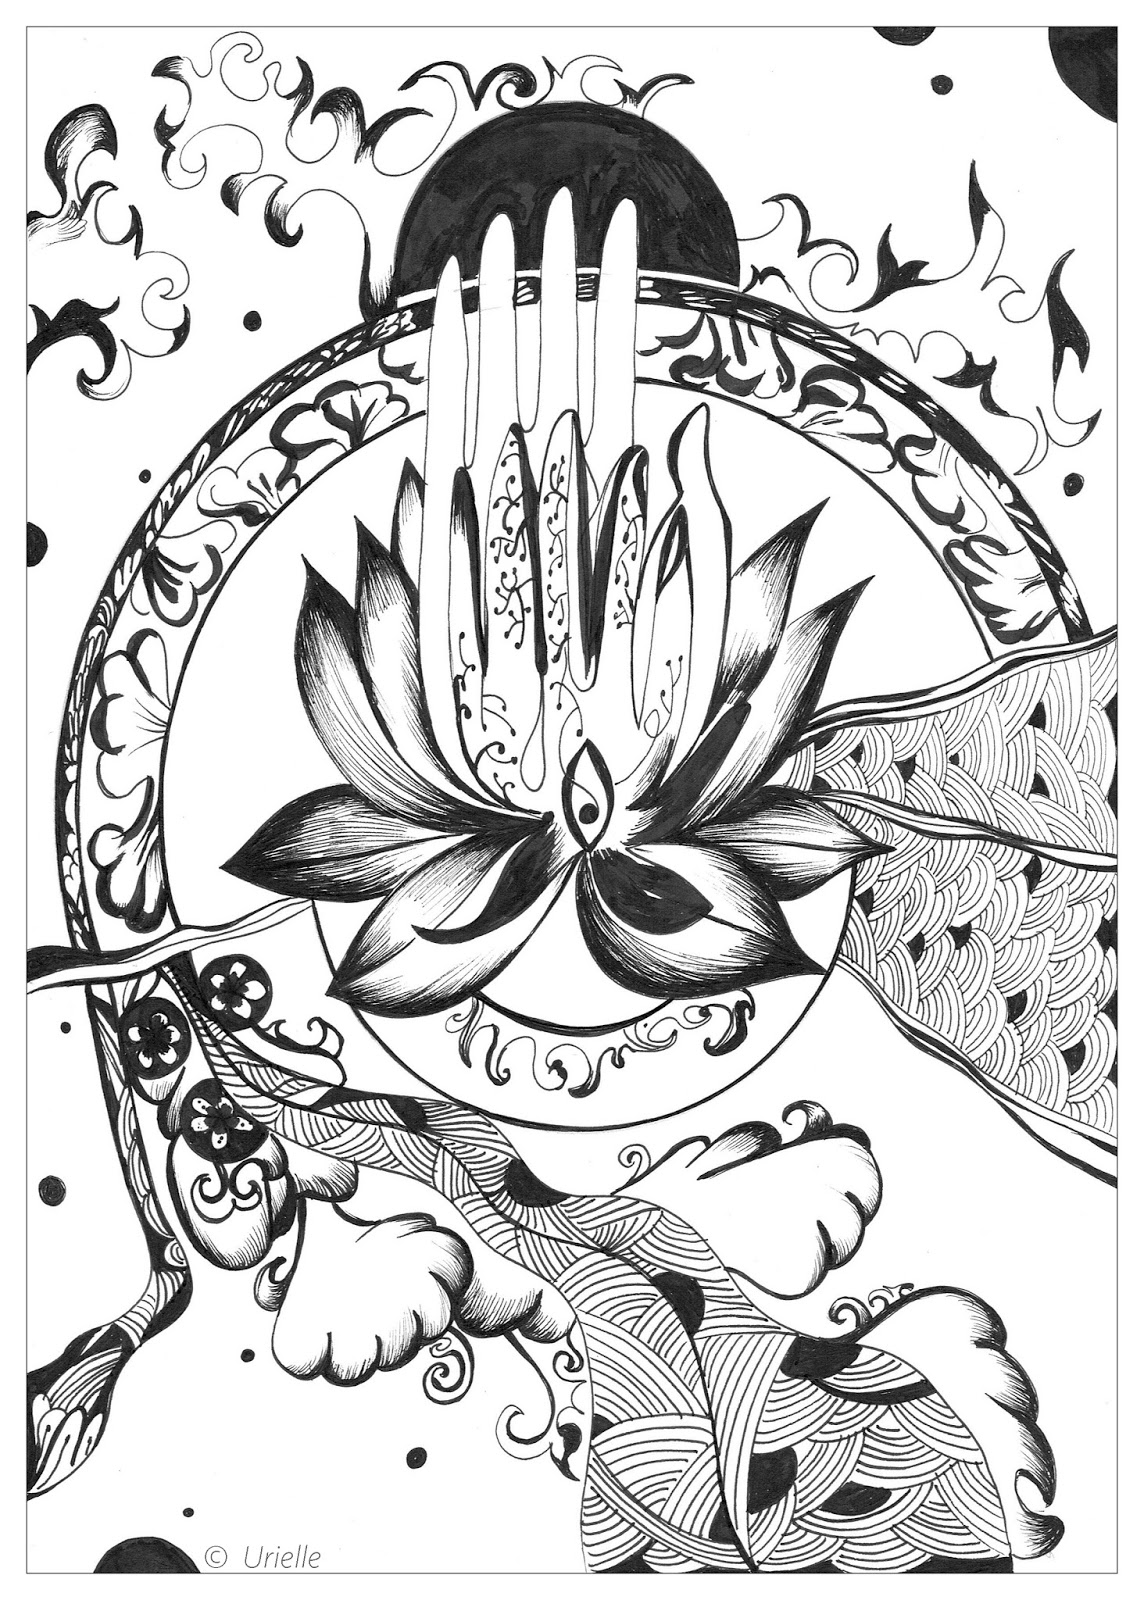 Free Zen Coloring Pages For Adults To Download